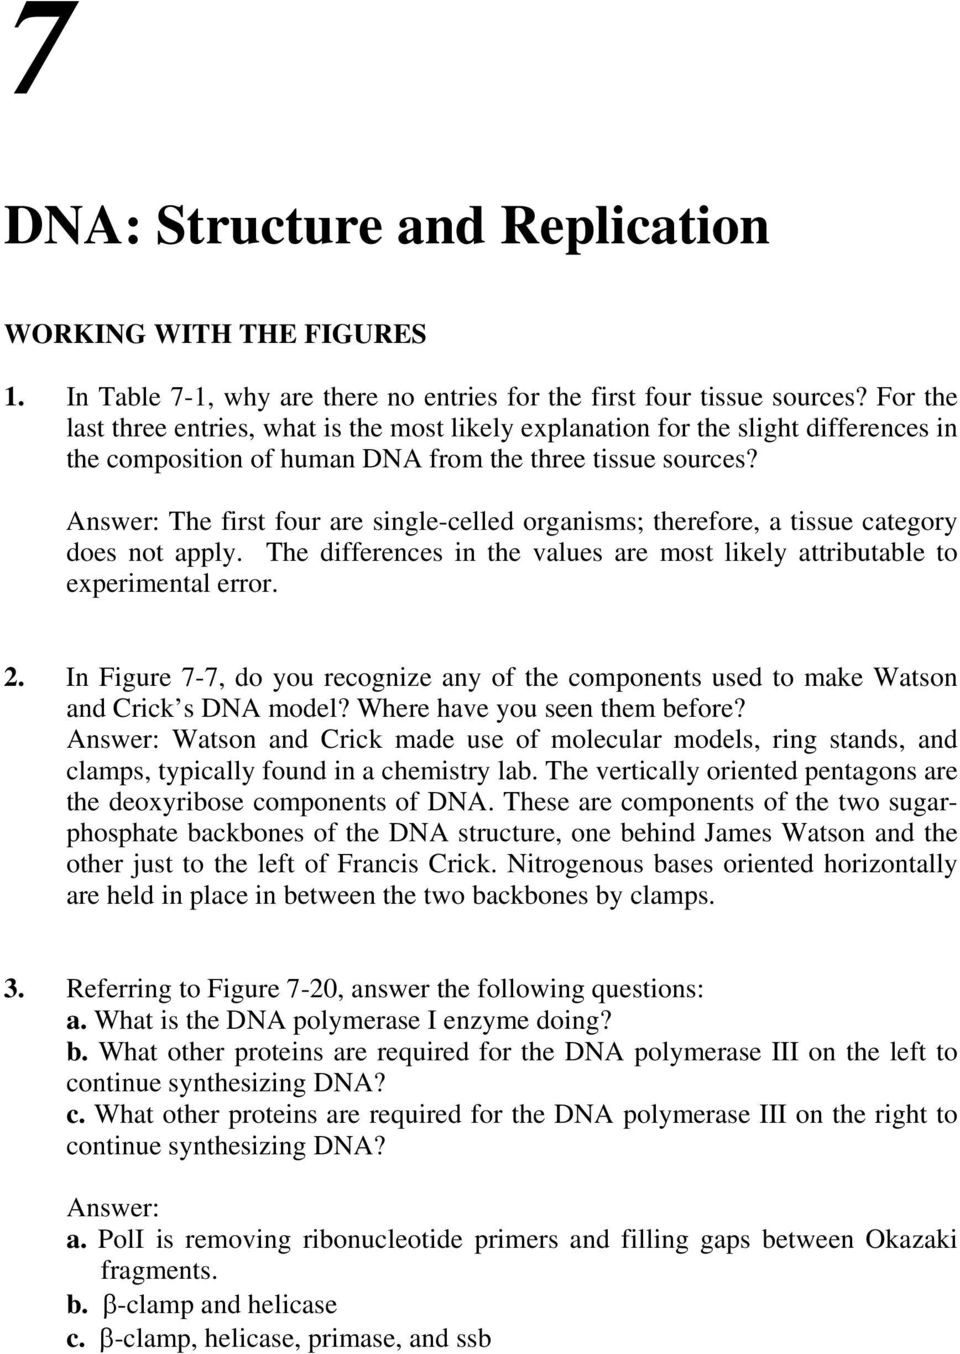 Dna Replication Worksheet Key Dna Structure and Replication Pdf Free Download